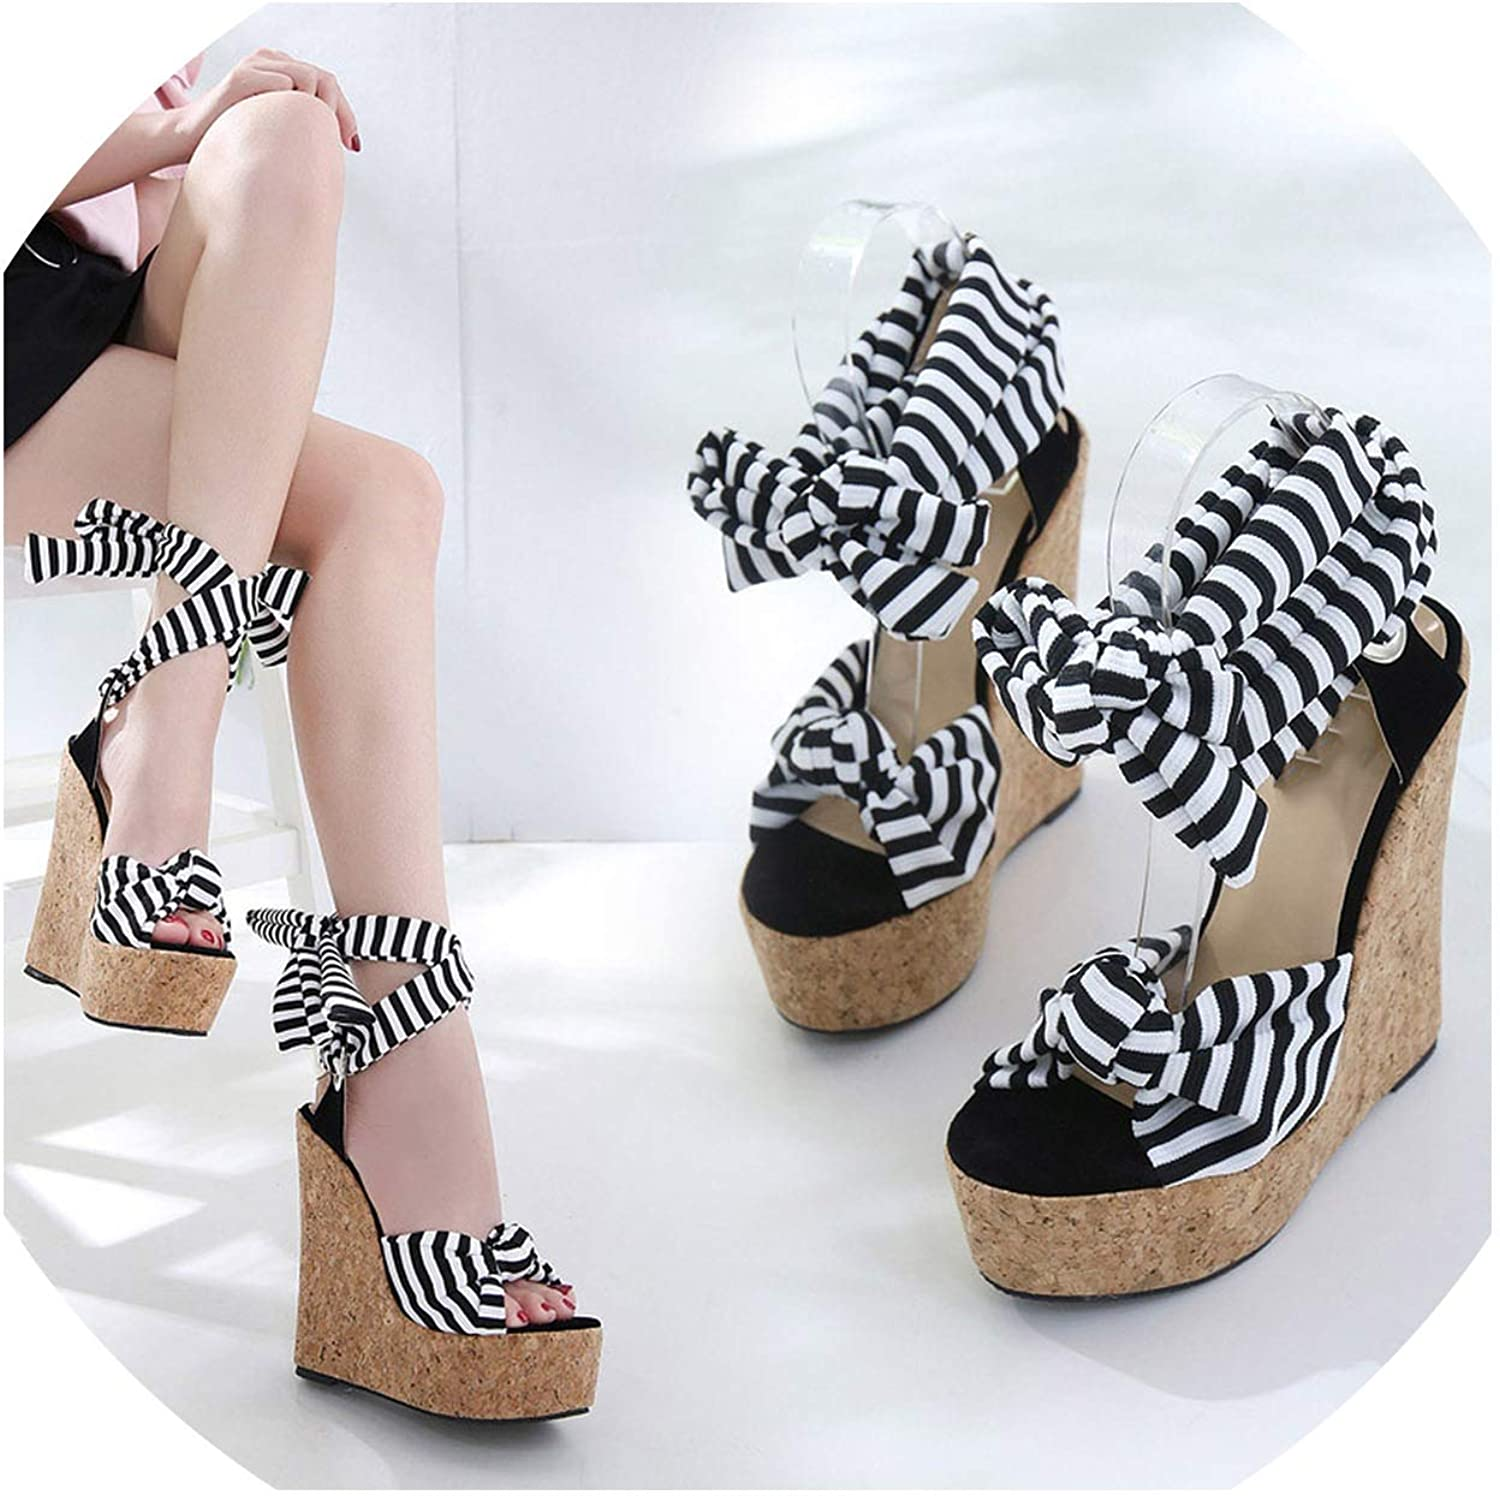 16CM Wedges Sandals Pumps High Heel Female Sandals Stripe Cross Strap Peep Toe shoes